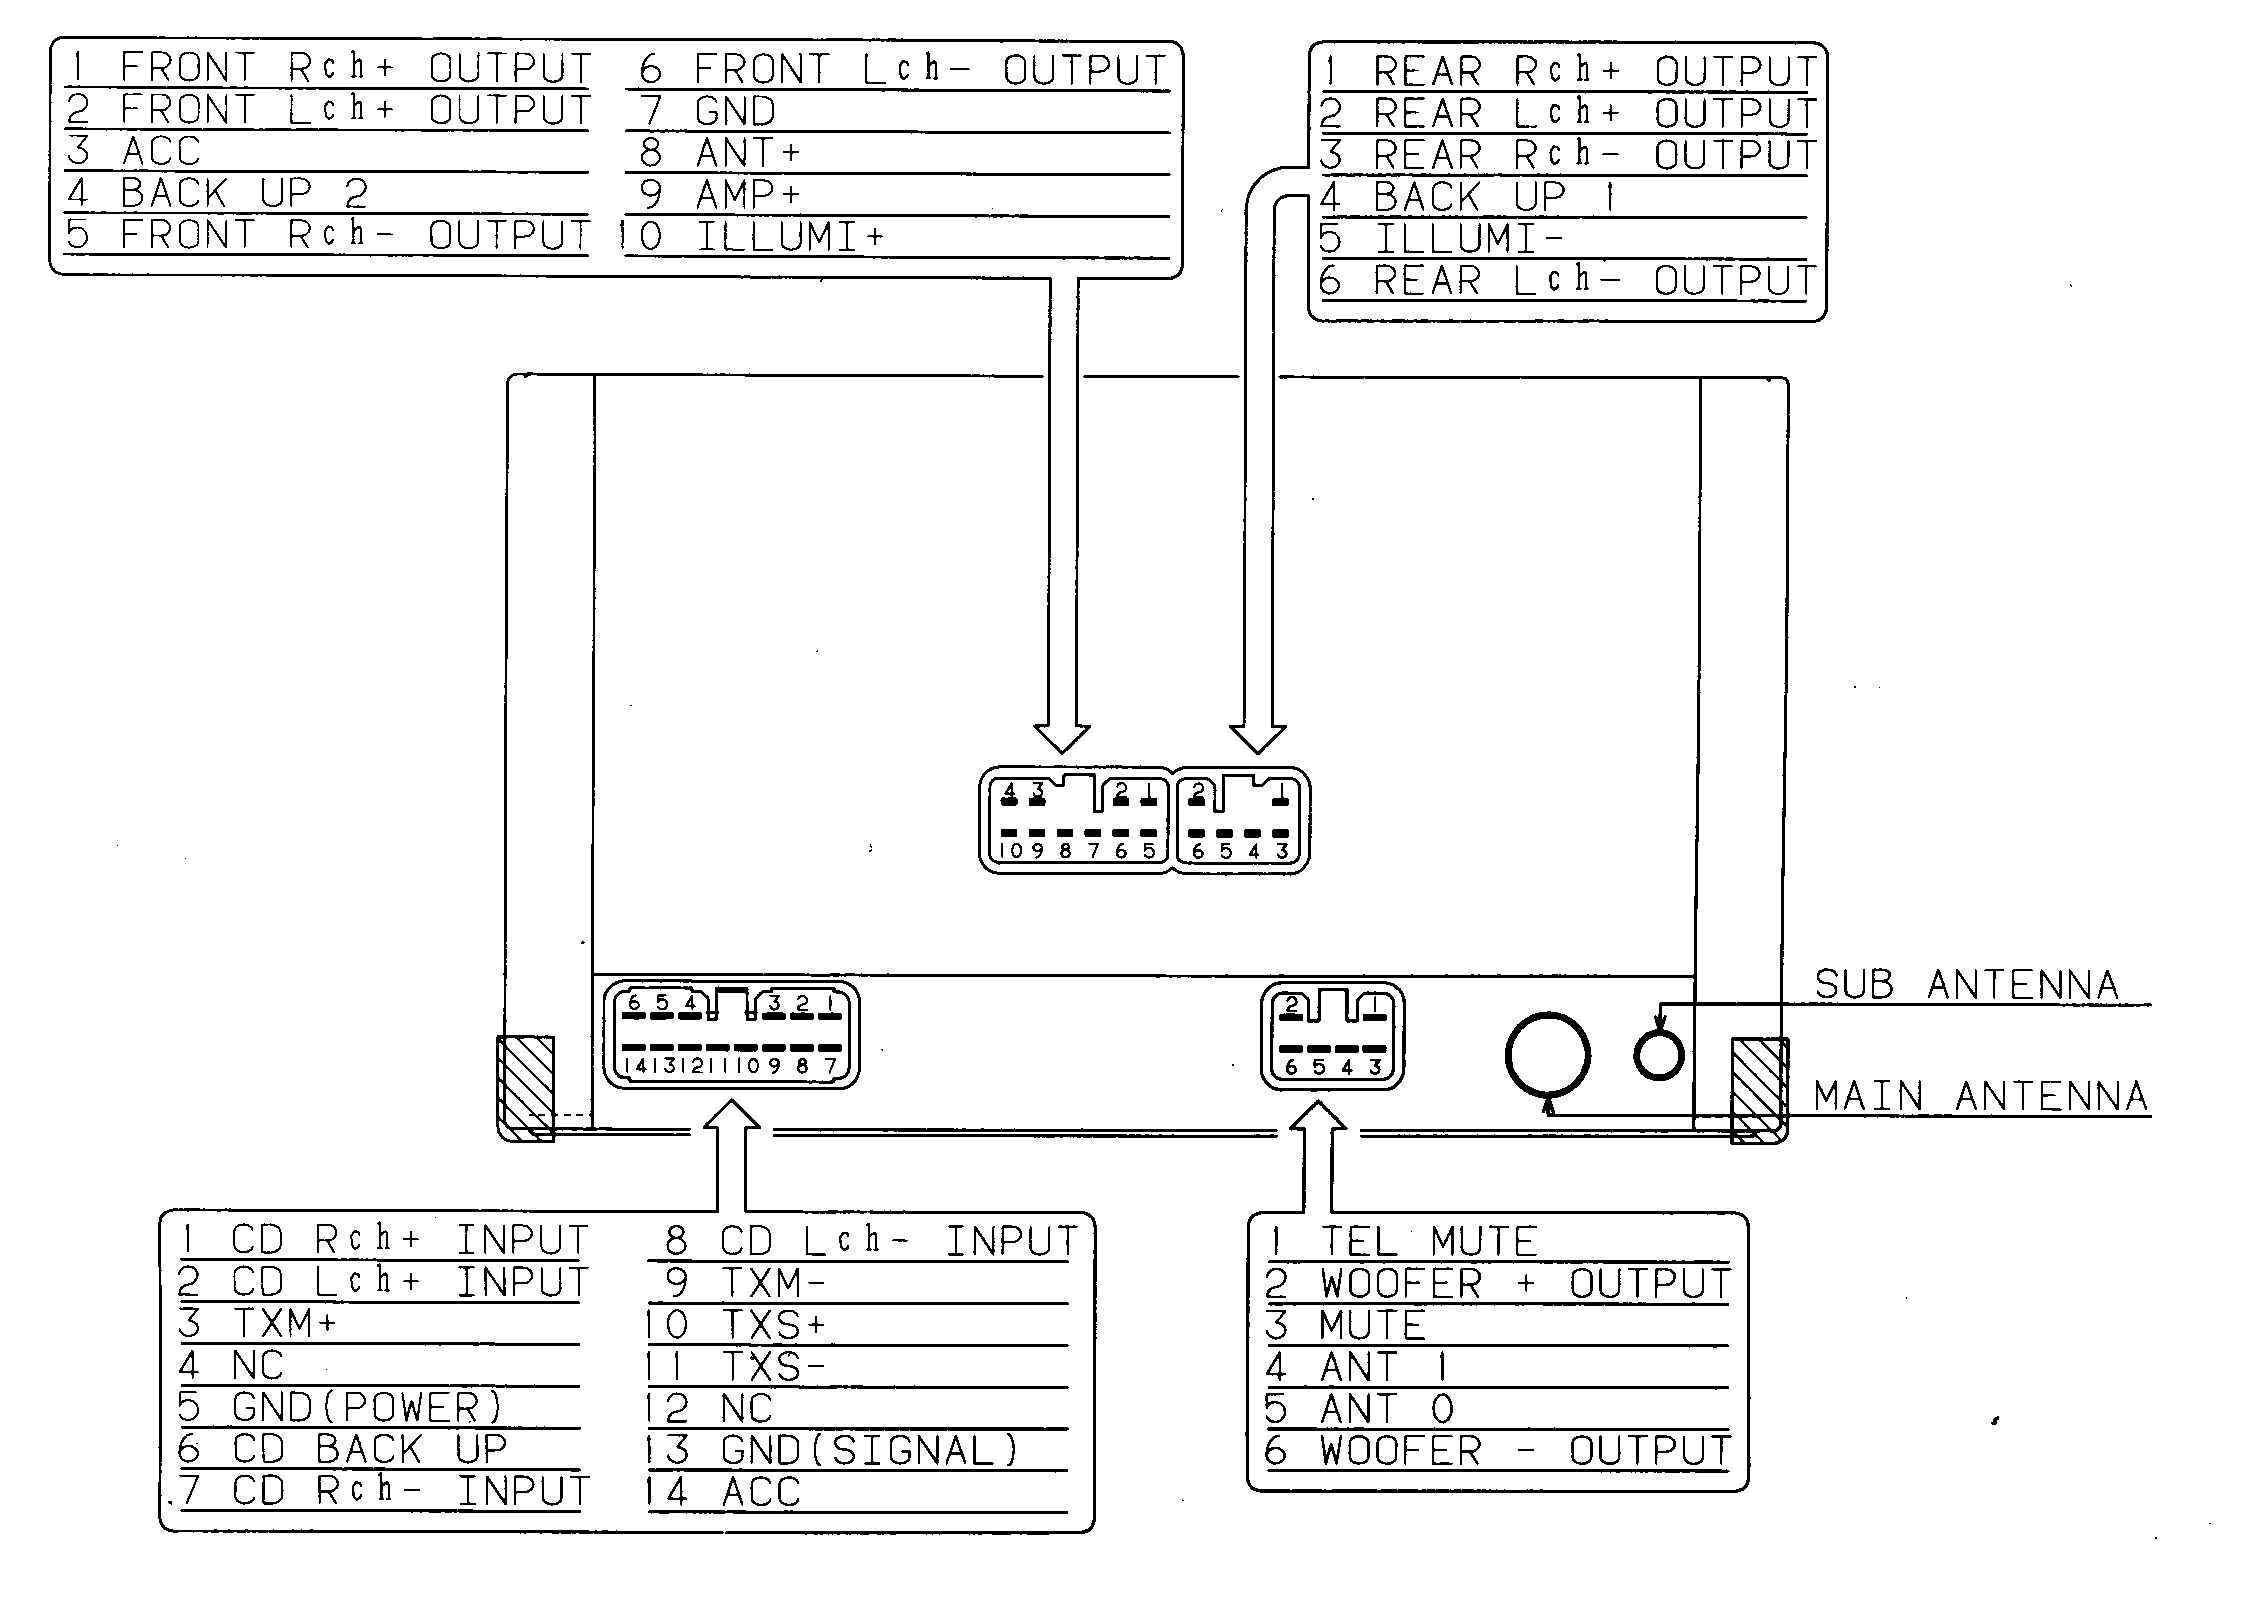 Lexus car stereo wiring diagram harness pinout connector wire 1996 jeep grand cherokee car stereo radio wiring diagram wiring 2002 jeep cherokee radio wiring diagram at metegol.co